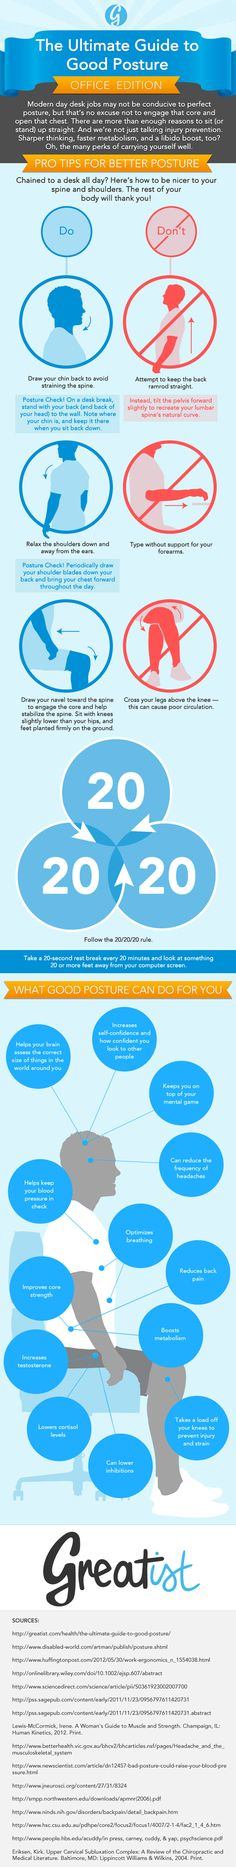 Ultimate Guide to Good Posture at Work